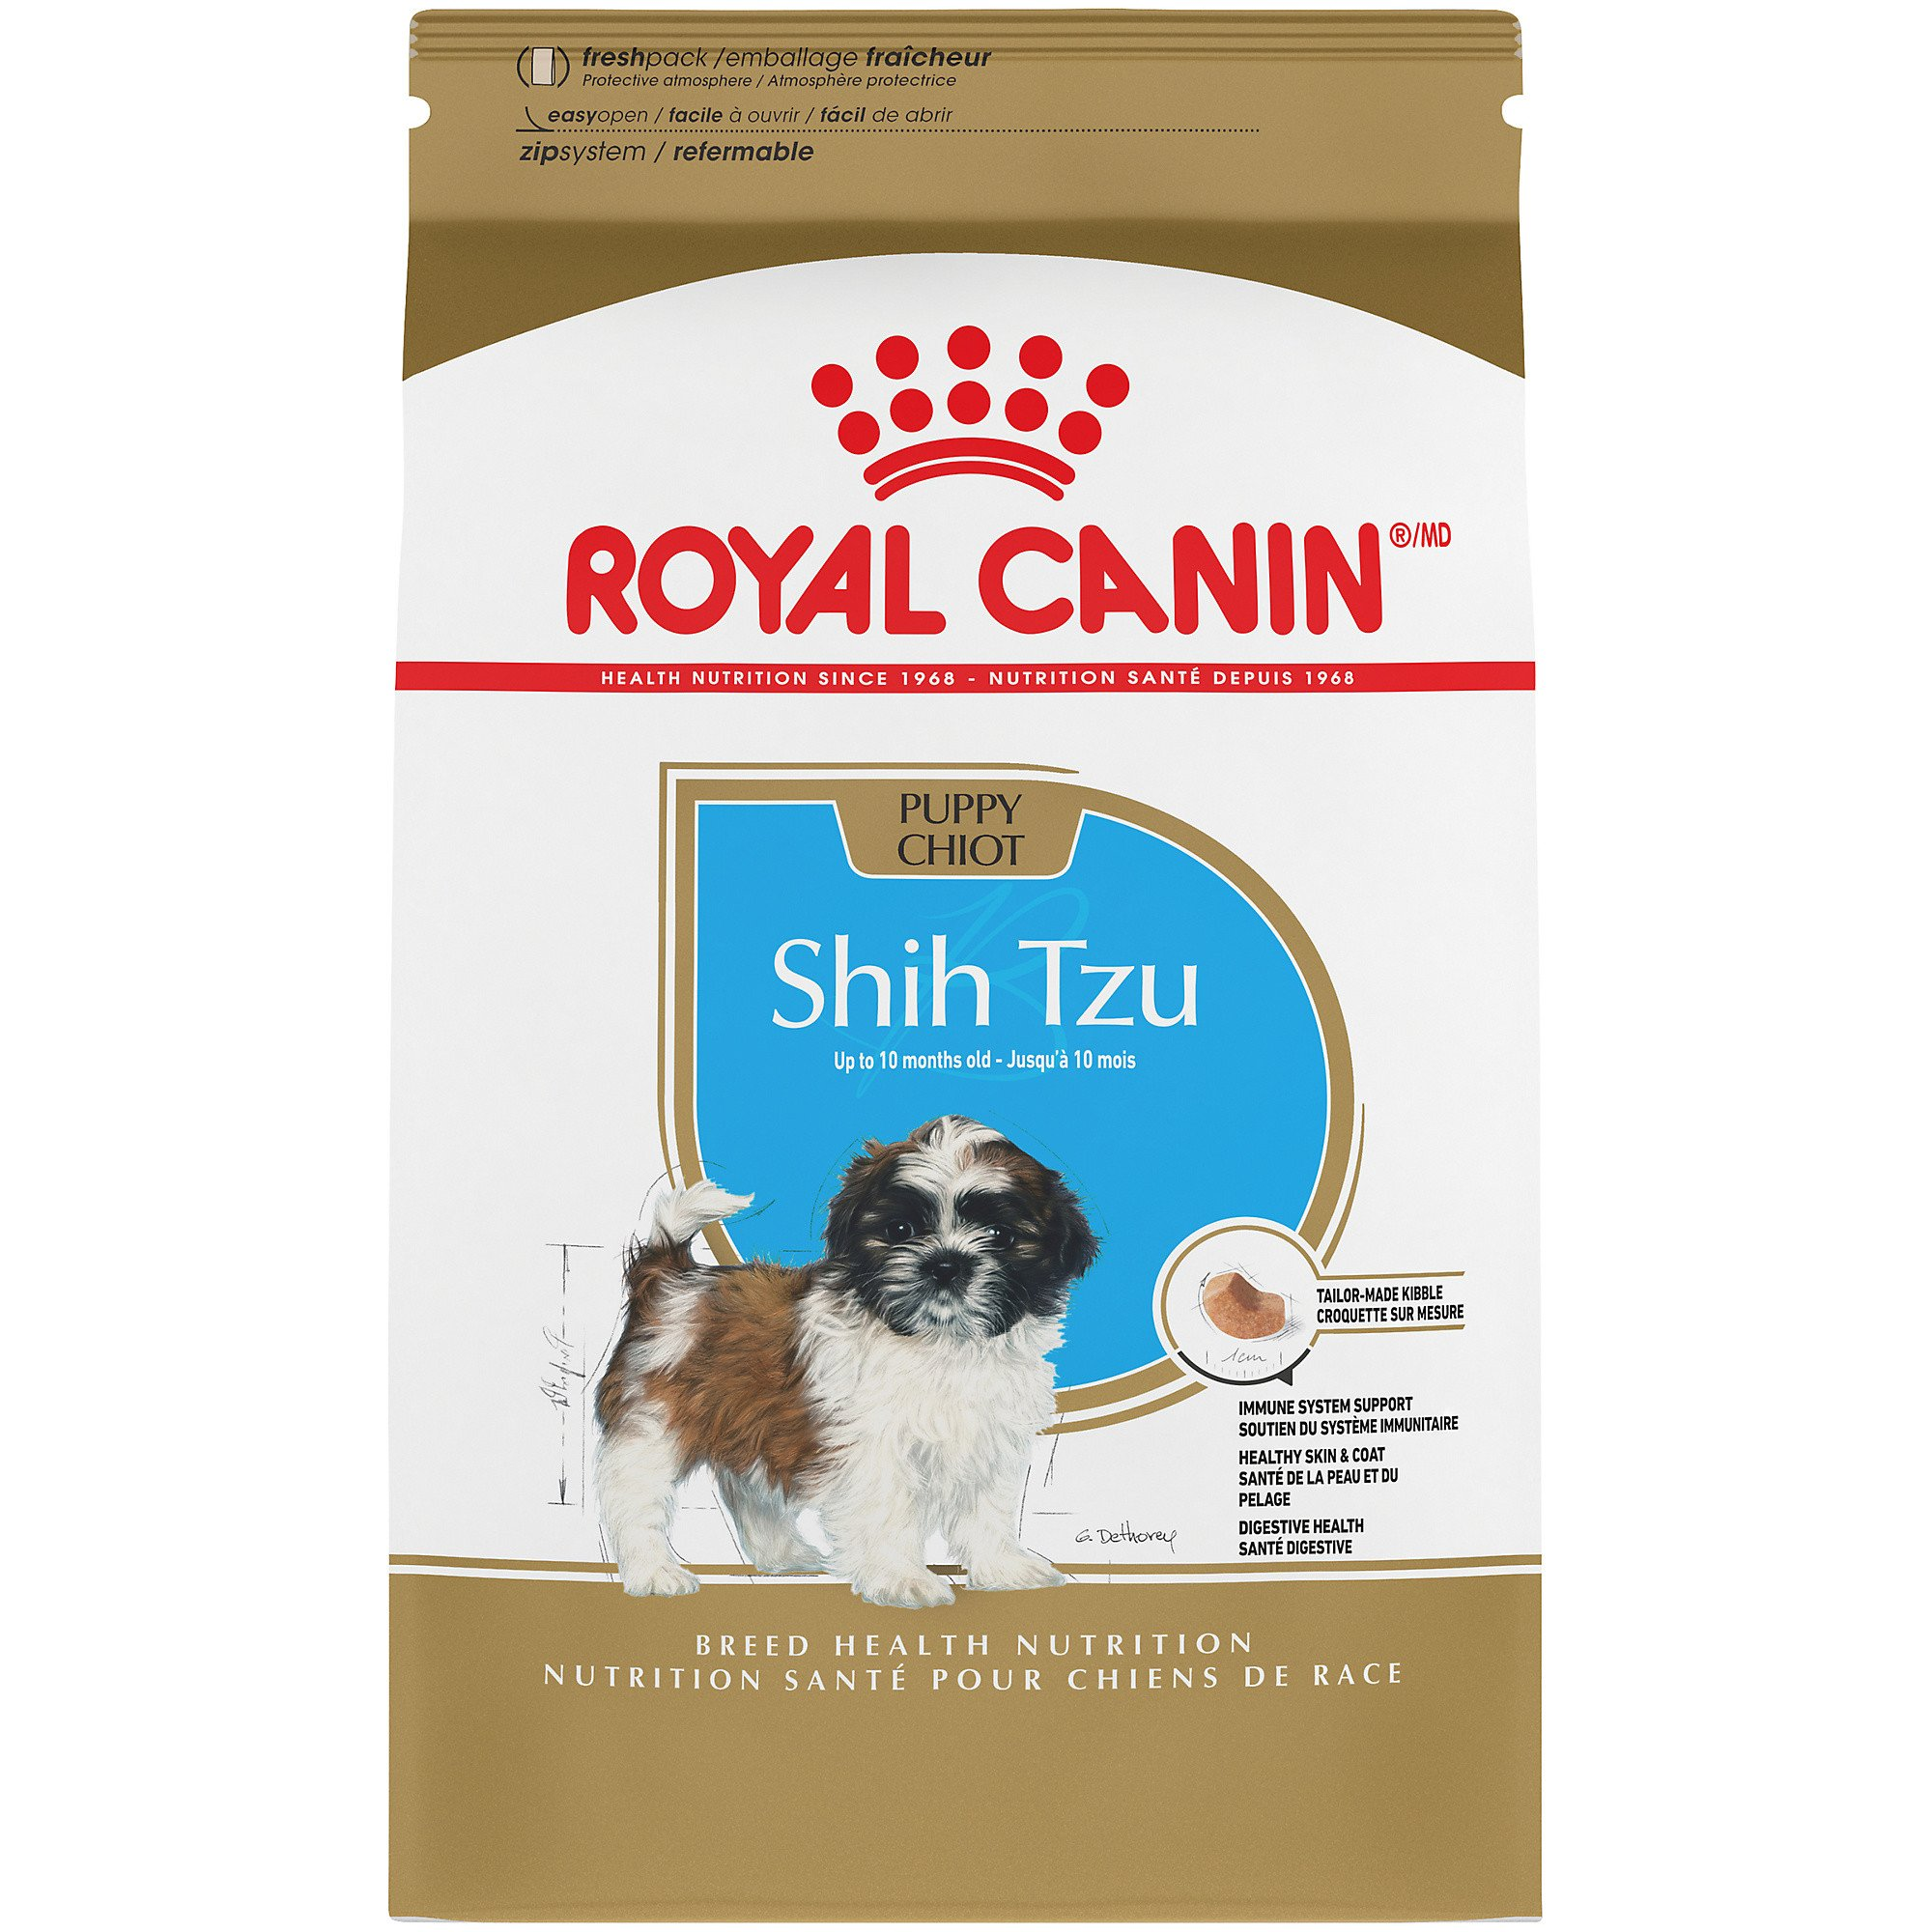 Royal Canin Breed Health Nutrition Shih Tzu Puppy Dry Dog Food | Petco